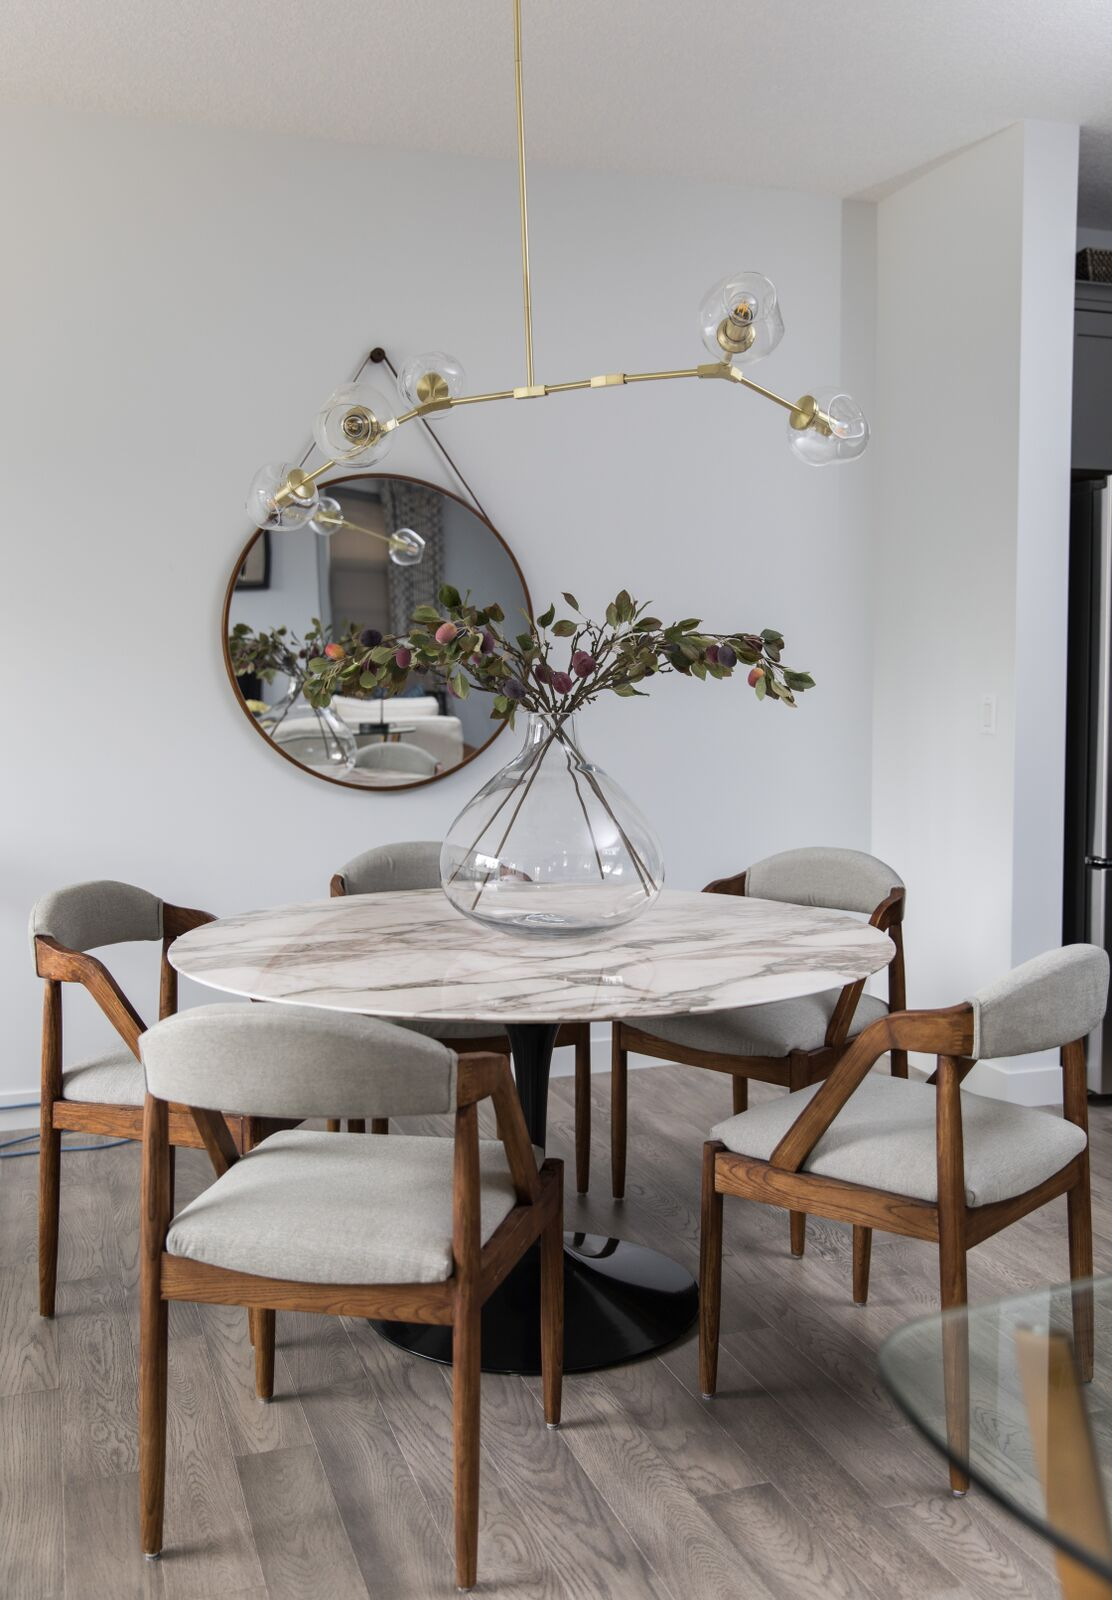 Calgary interior design leanne bunnell firm upholstered wooden chairs, marble top, gold branched modern lighting